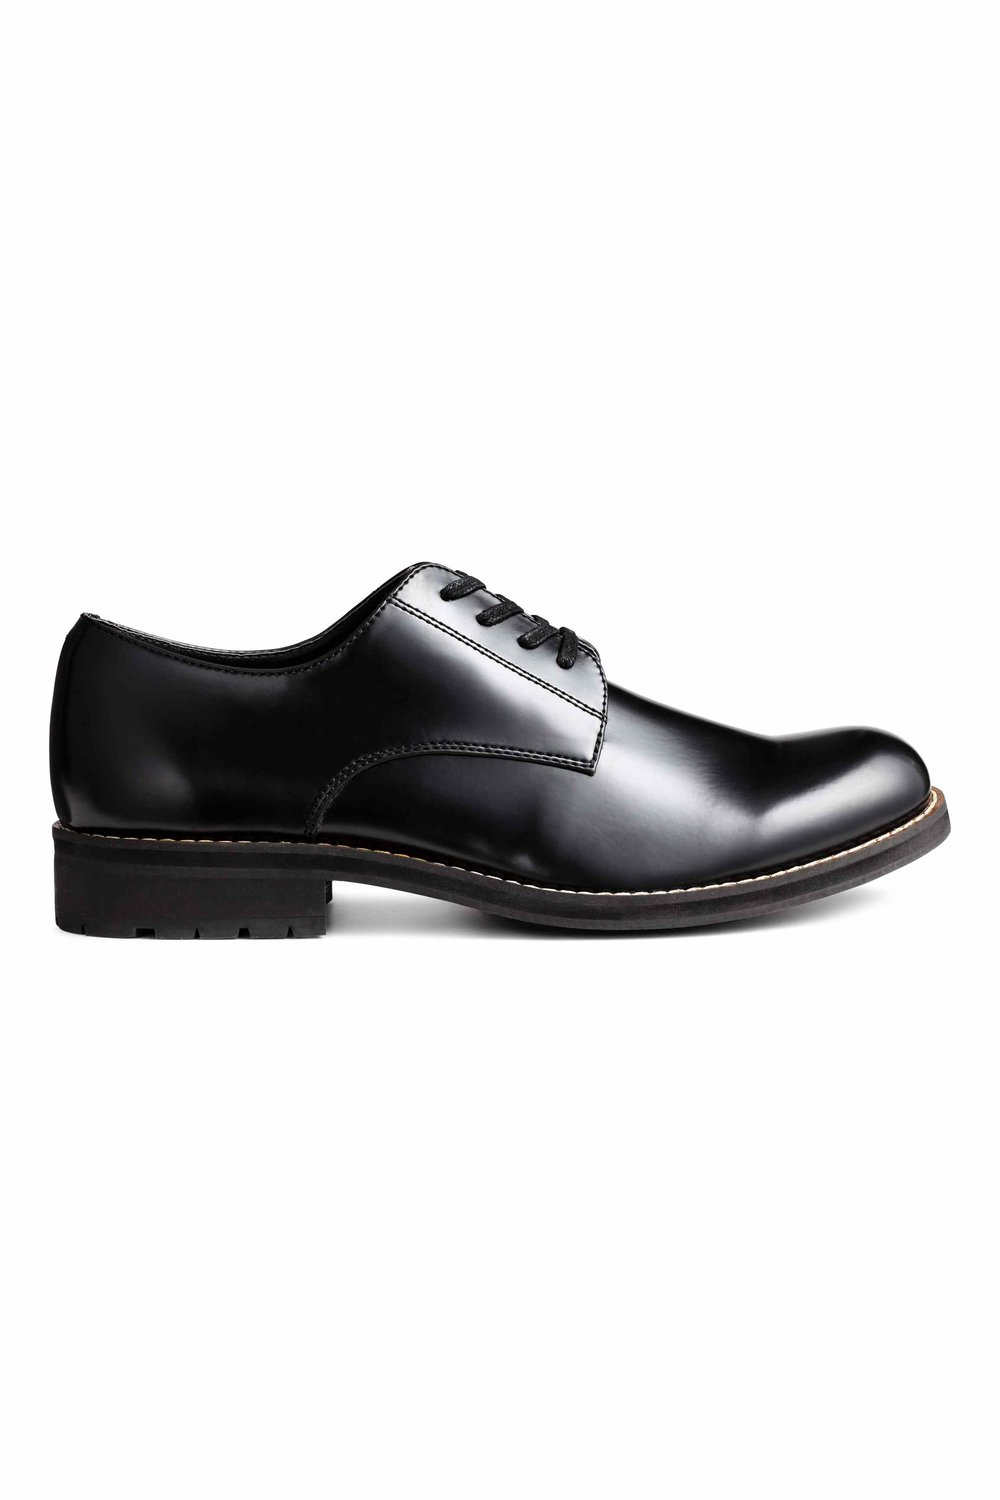 Derby shoes with chunky soles, £39.99 (hm.com)